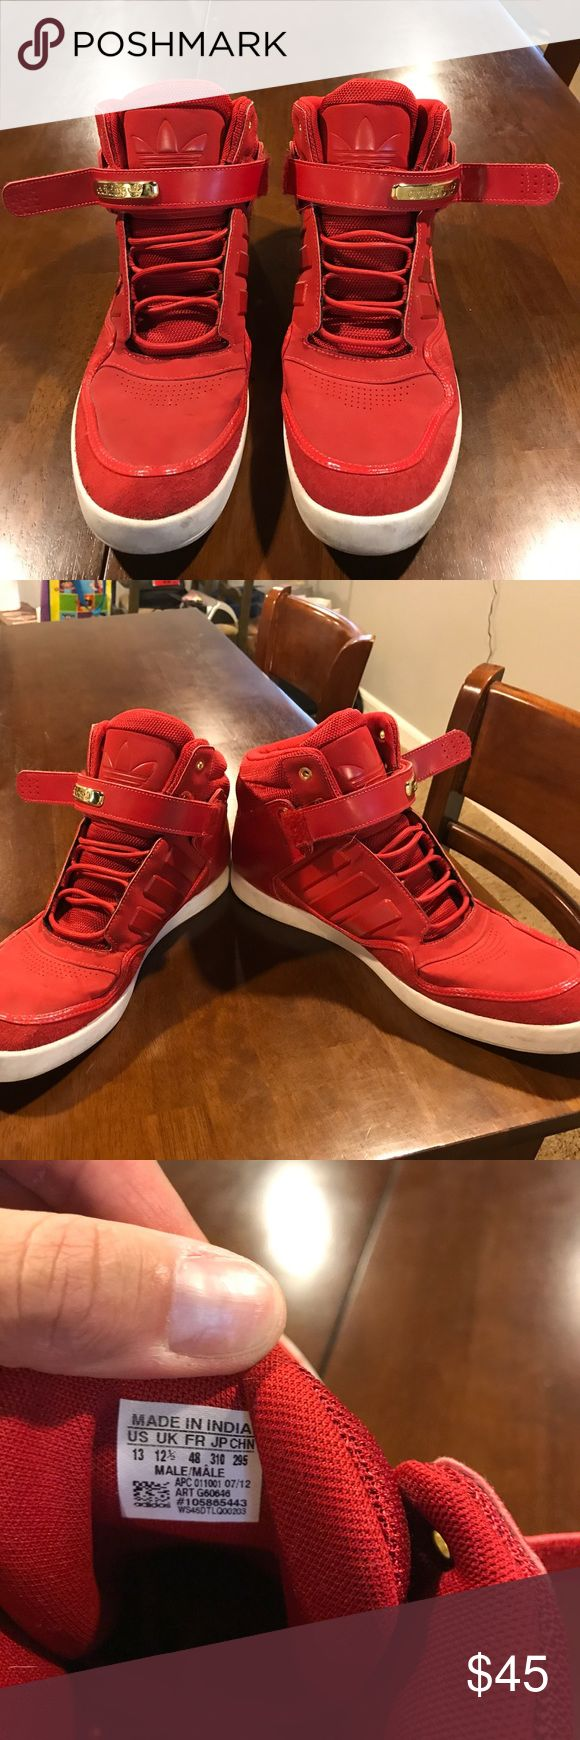 Men's high top sneakers Men's size 13 high top sneakers. Red and gold with a little suede around shoe adidas Shoes Sneakers